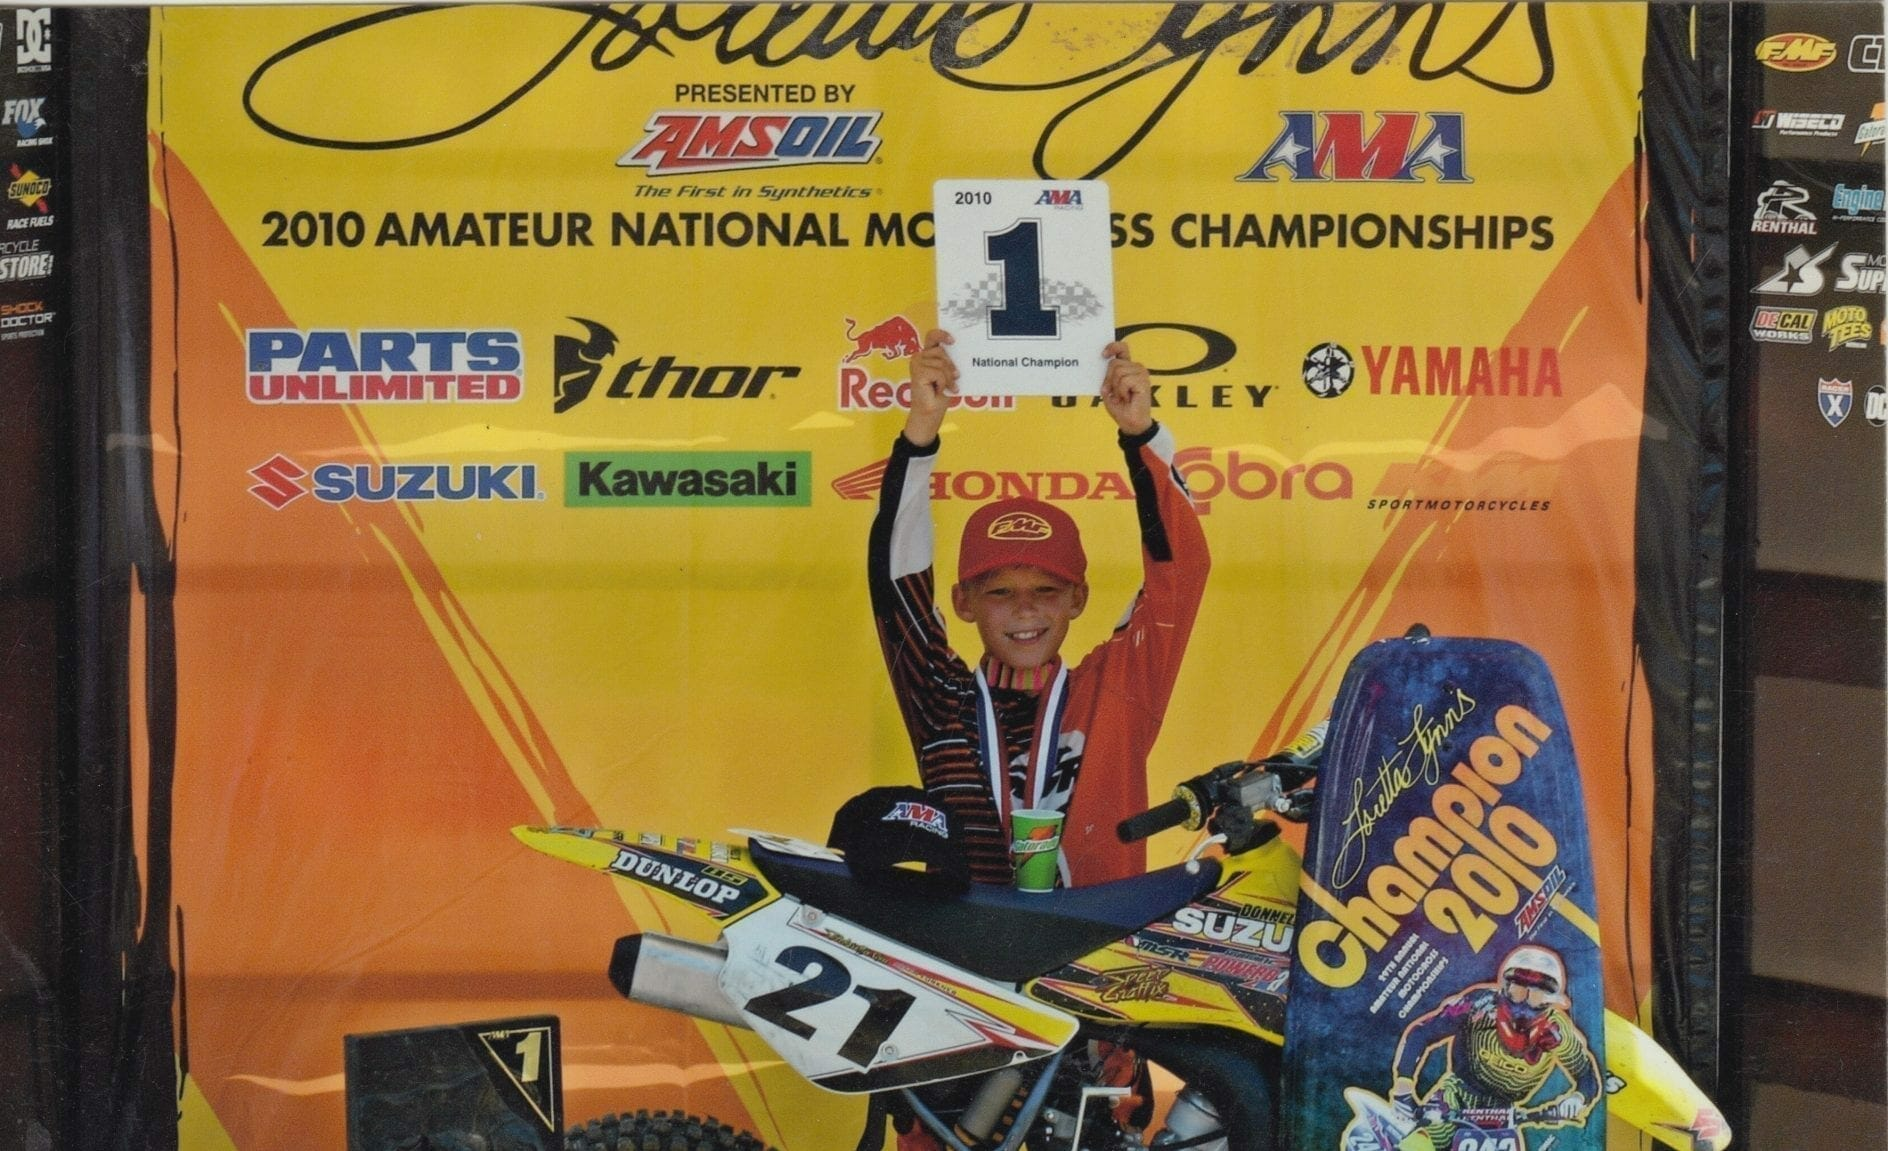 Austin won his first two championships at Loretta Lynn's in 2010. Photo: Forkner family